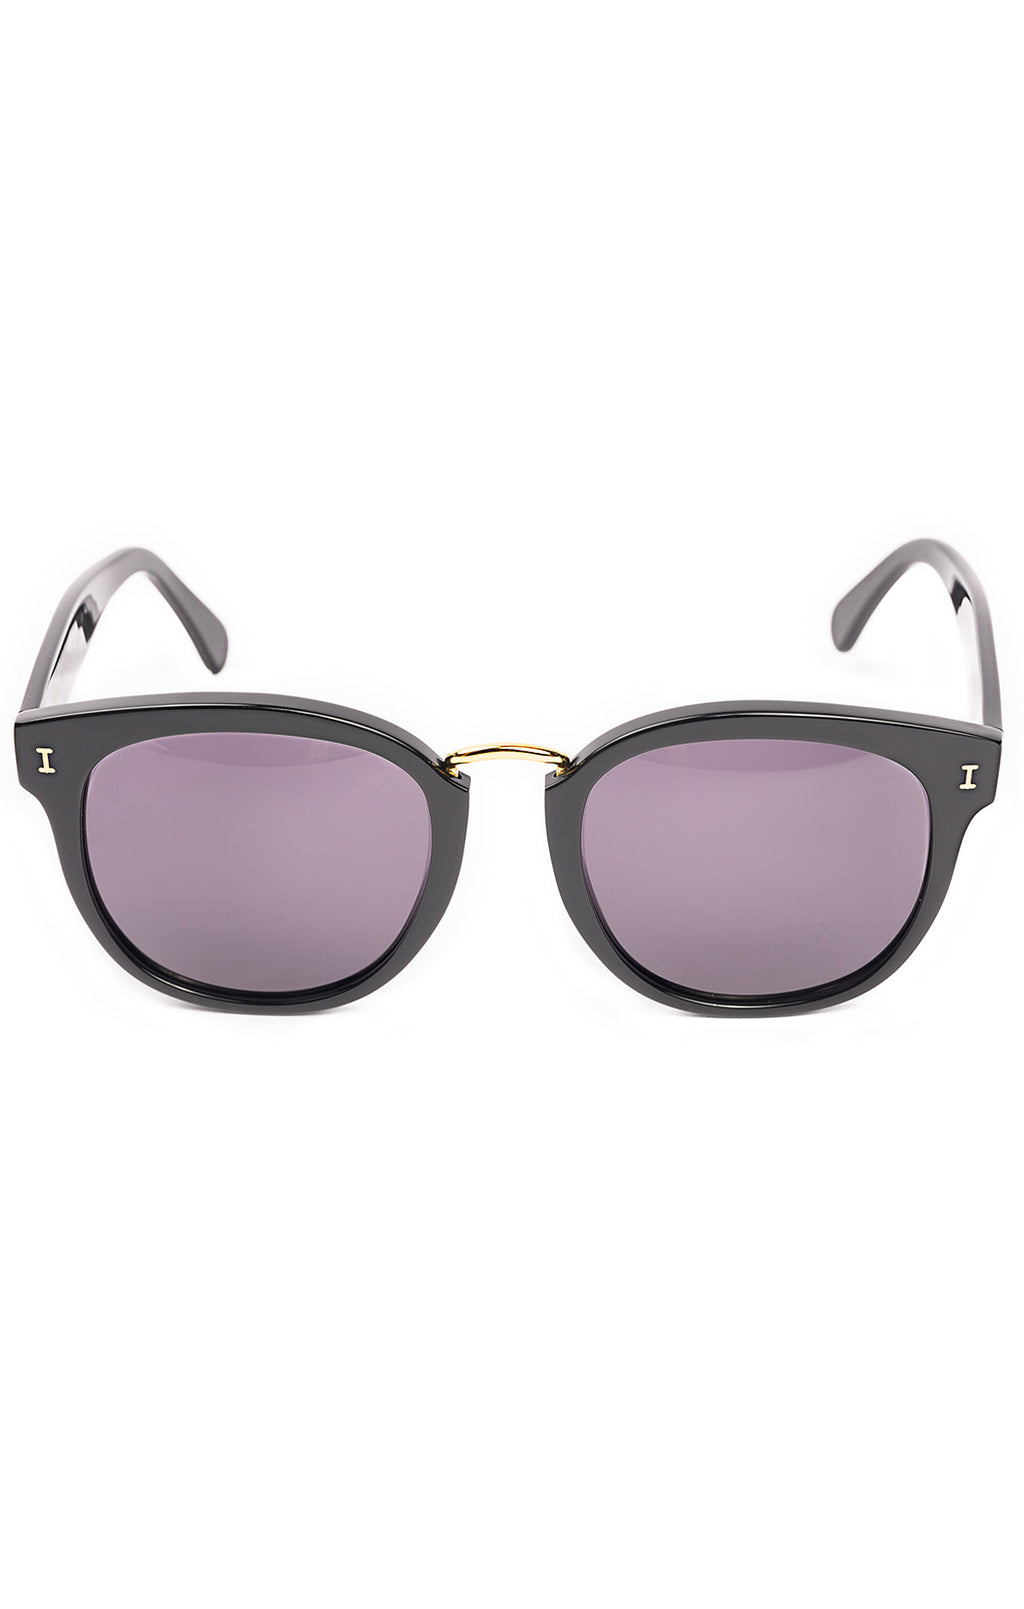 Black with dark purple lens sunglasses